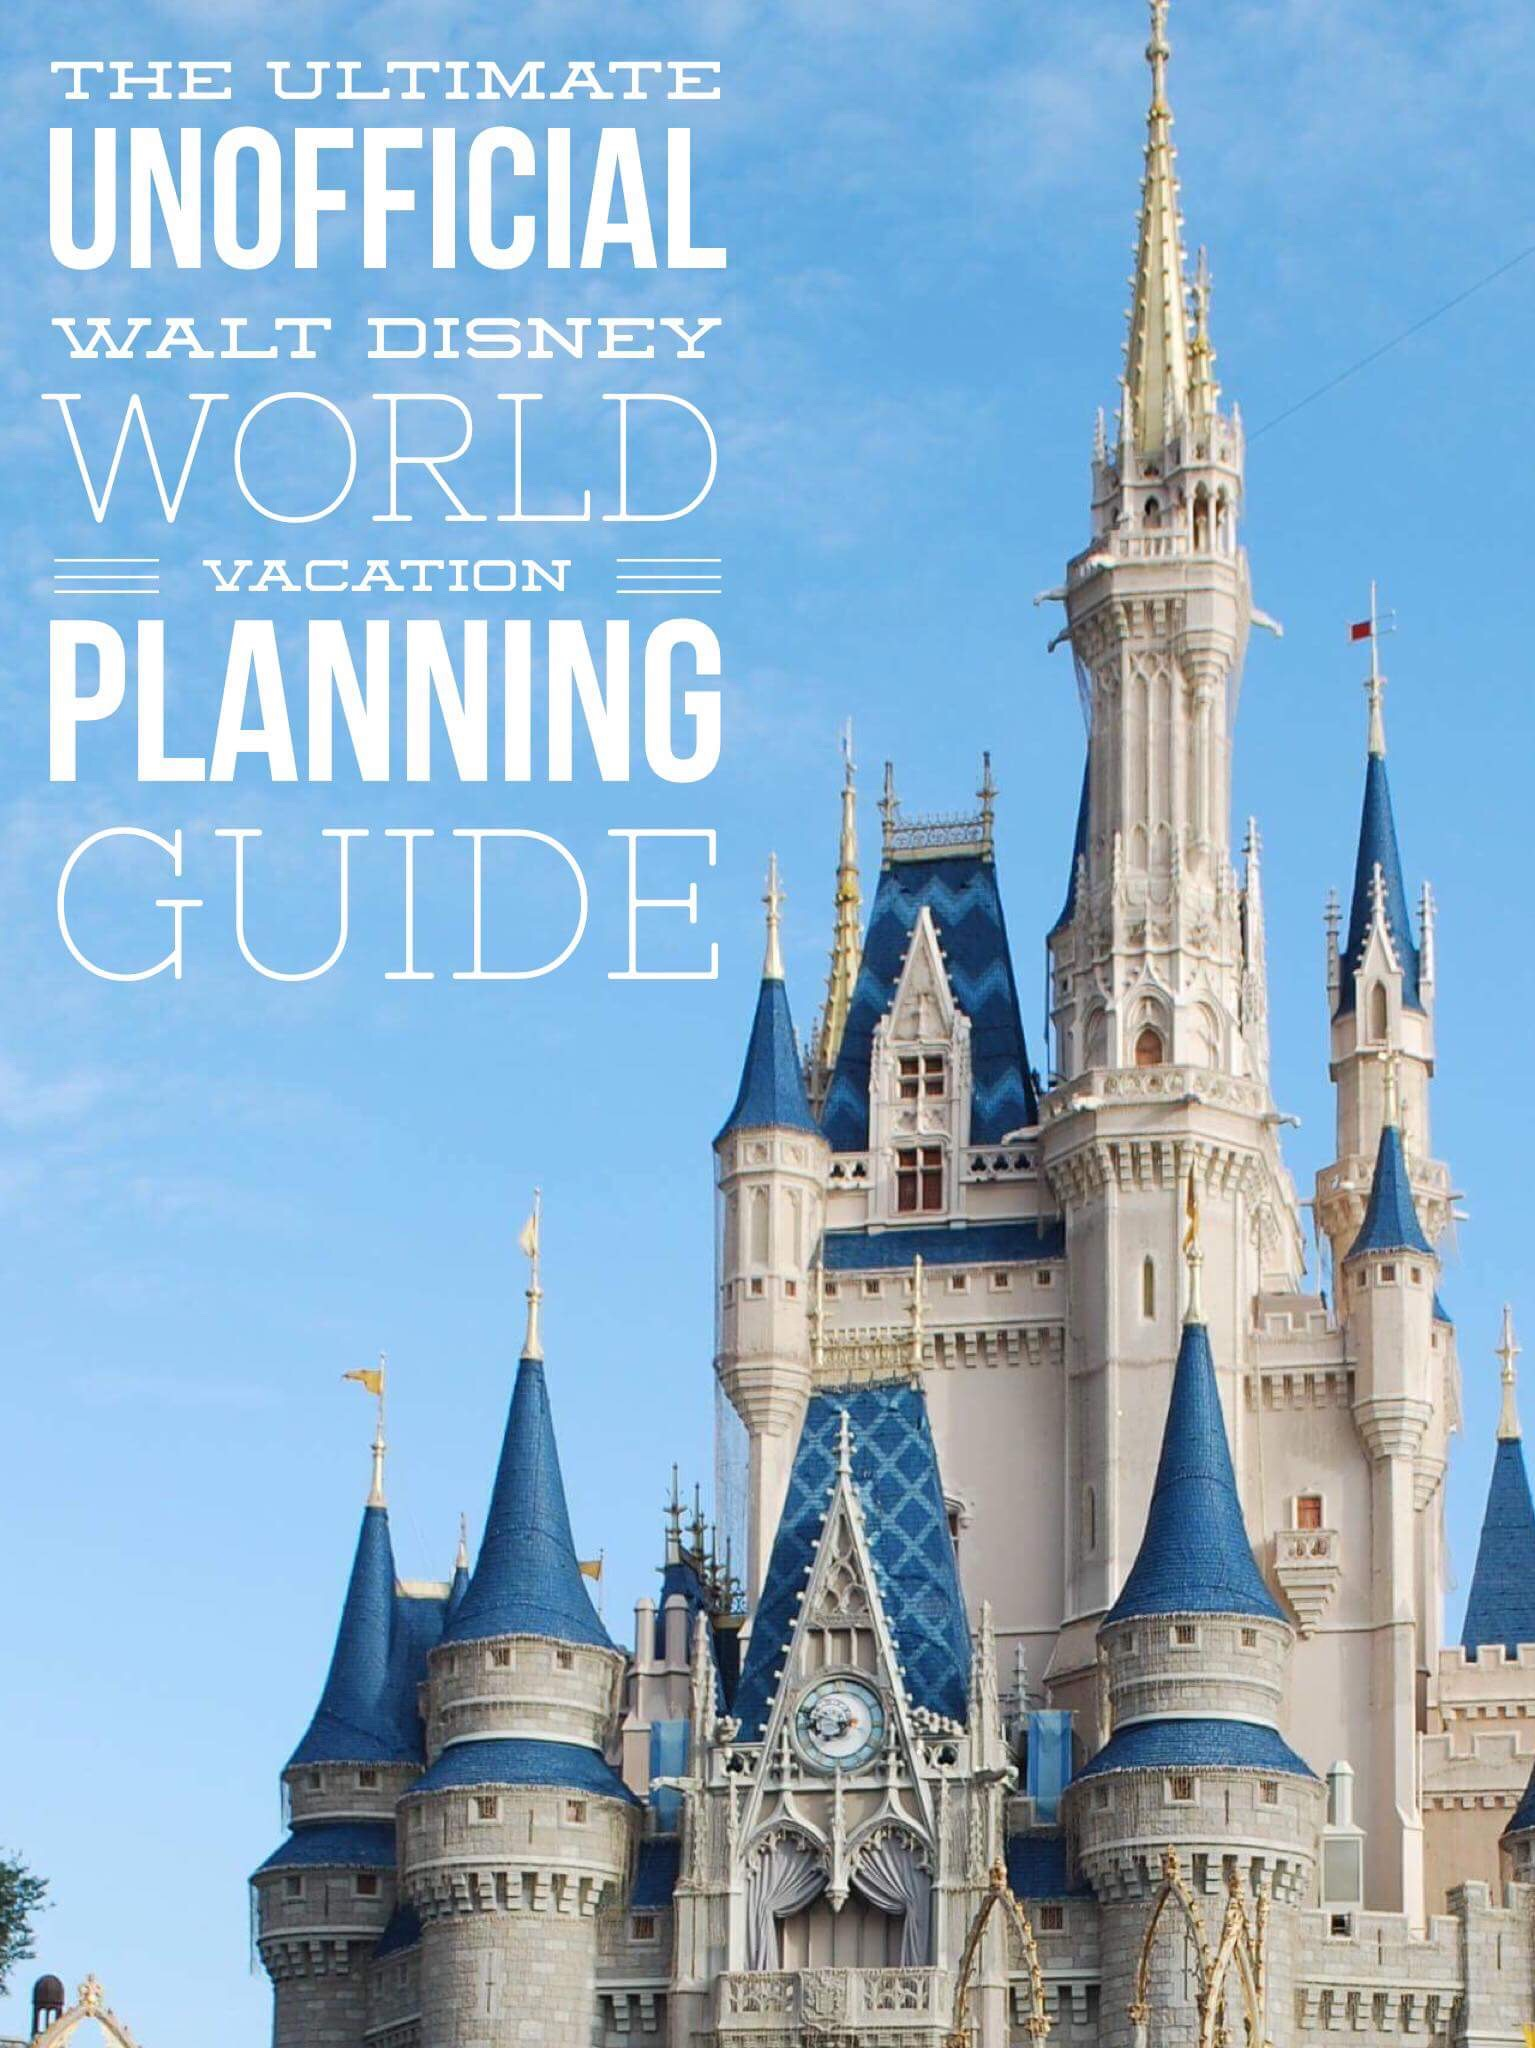 The Ultimate Unofficial Walt Disney World Planning Workbook | MyPixieDustDiary.com | Need help planning your Walt Disney World vacation? This workbook will help you do just that!